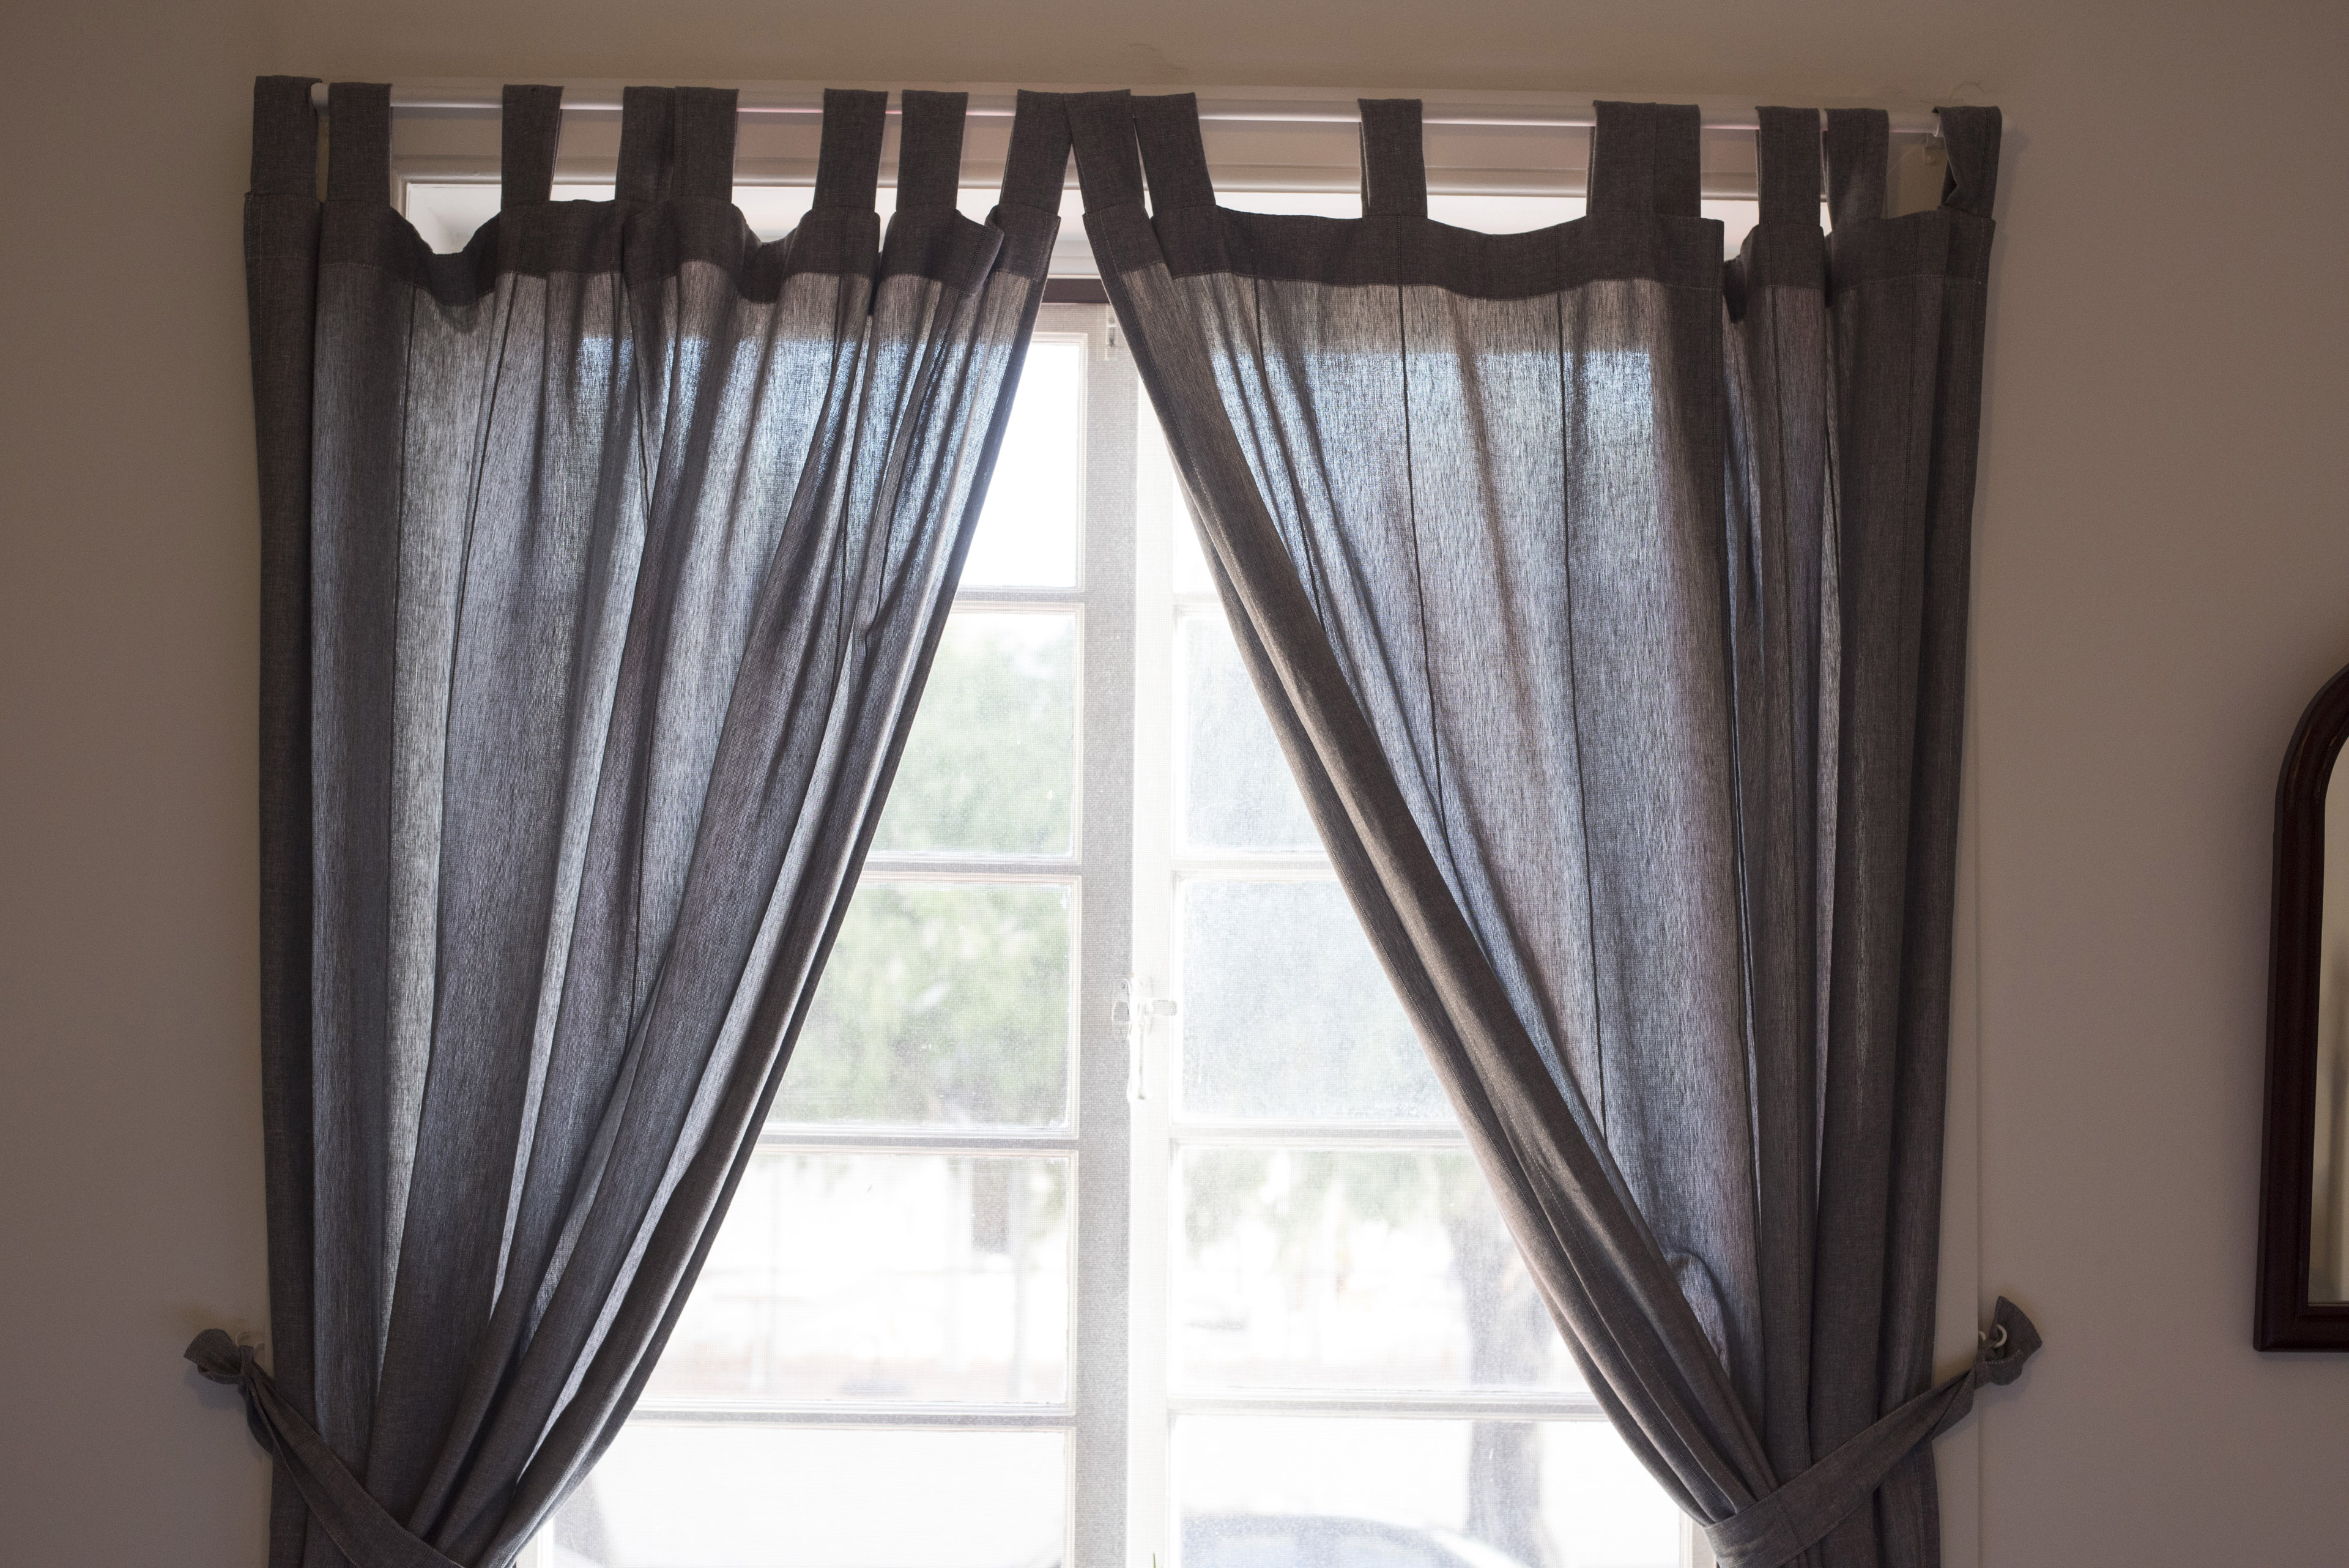 Window in a home with dark colored drapes or curtains hanging on a simple rod pulled to the sides with ties in a translucent fabric